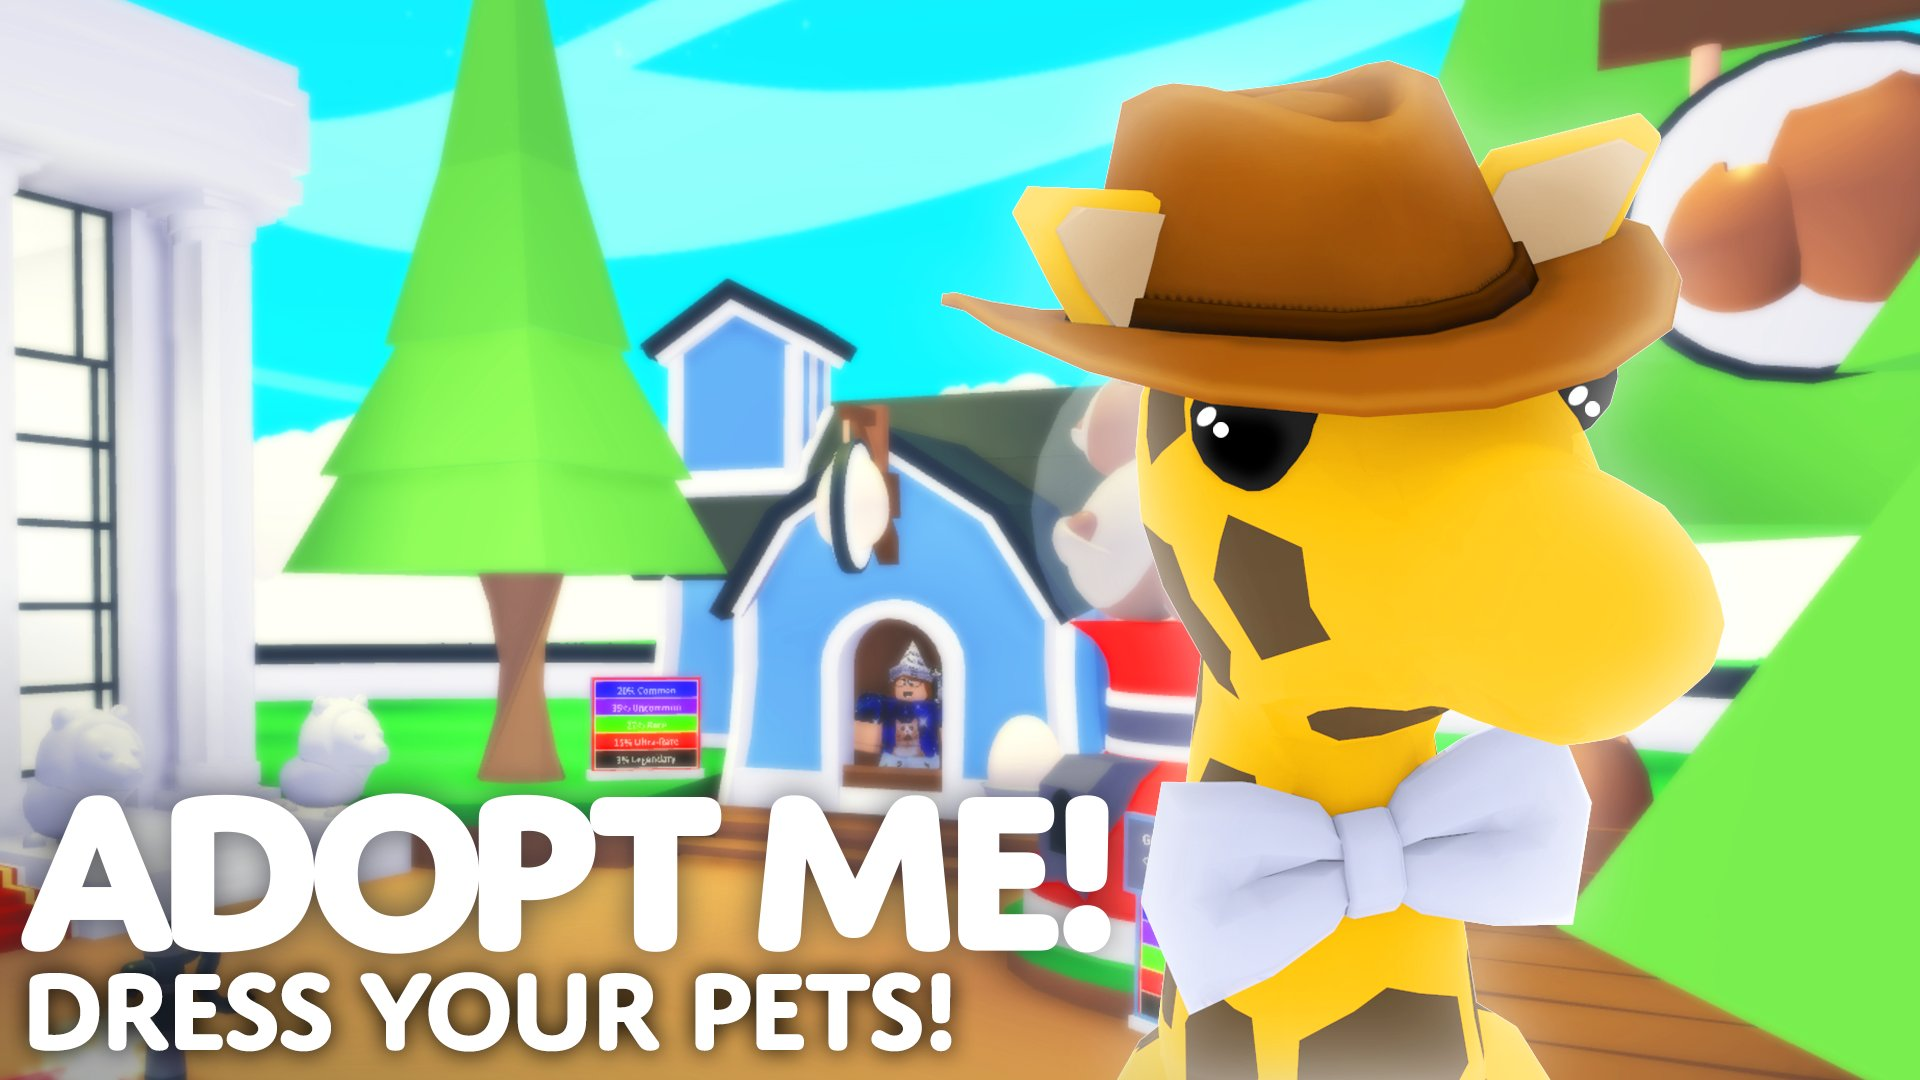 Cute Roblox Adopt Me Halloween Outfits Adopt Me On Twitter Pet Wear Update Is Live You Can Now Dress Your Pets Make Your Pets Stand Out In The Crowd Hat Shop Items Rotate Every